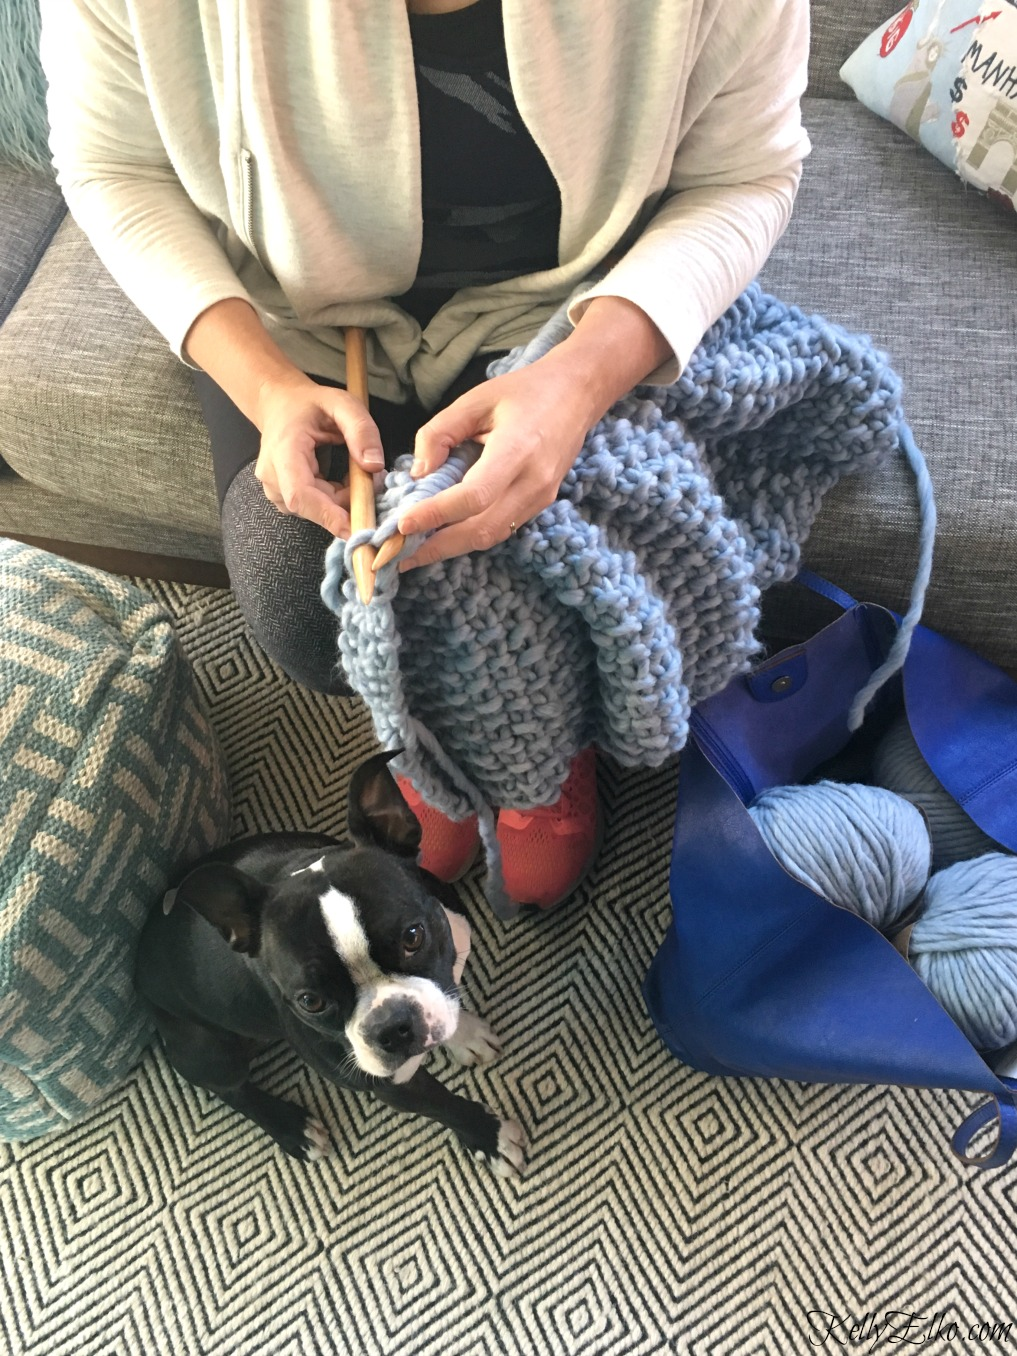 We are Knitters reviews - learn how to knit the easy way! kellyelko.com